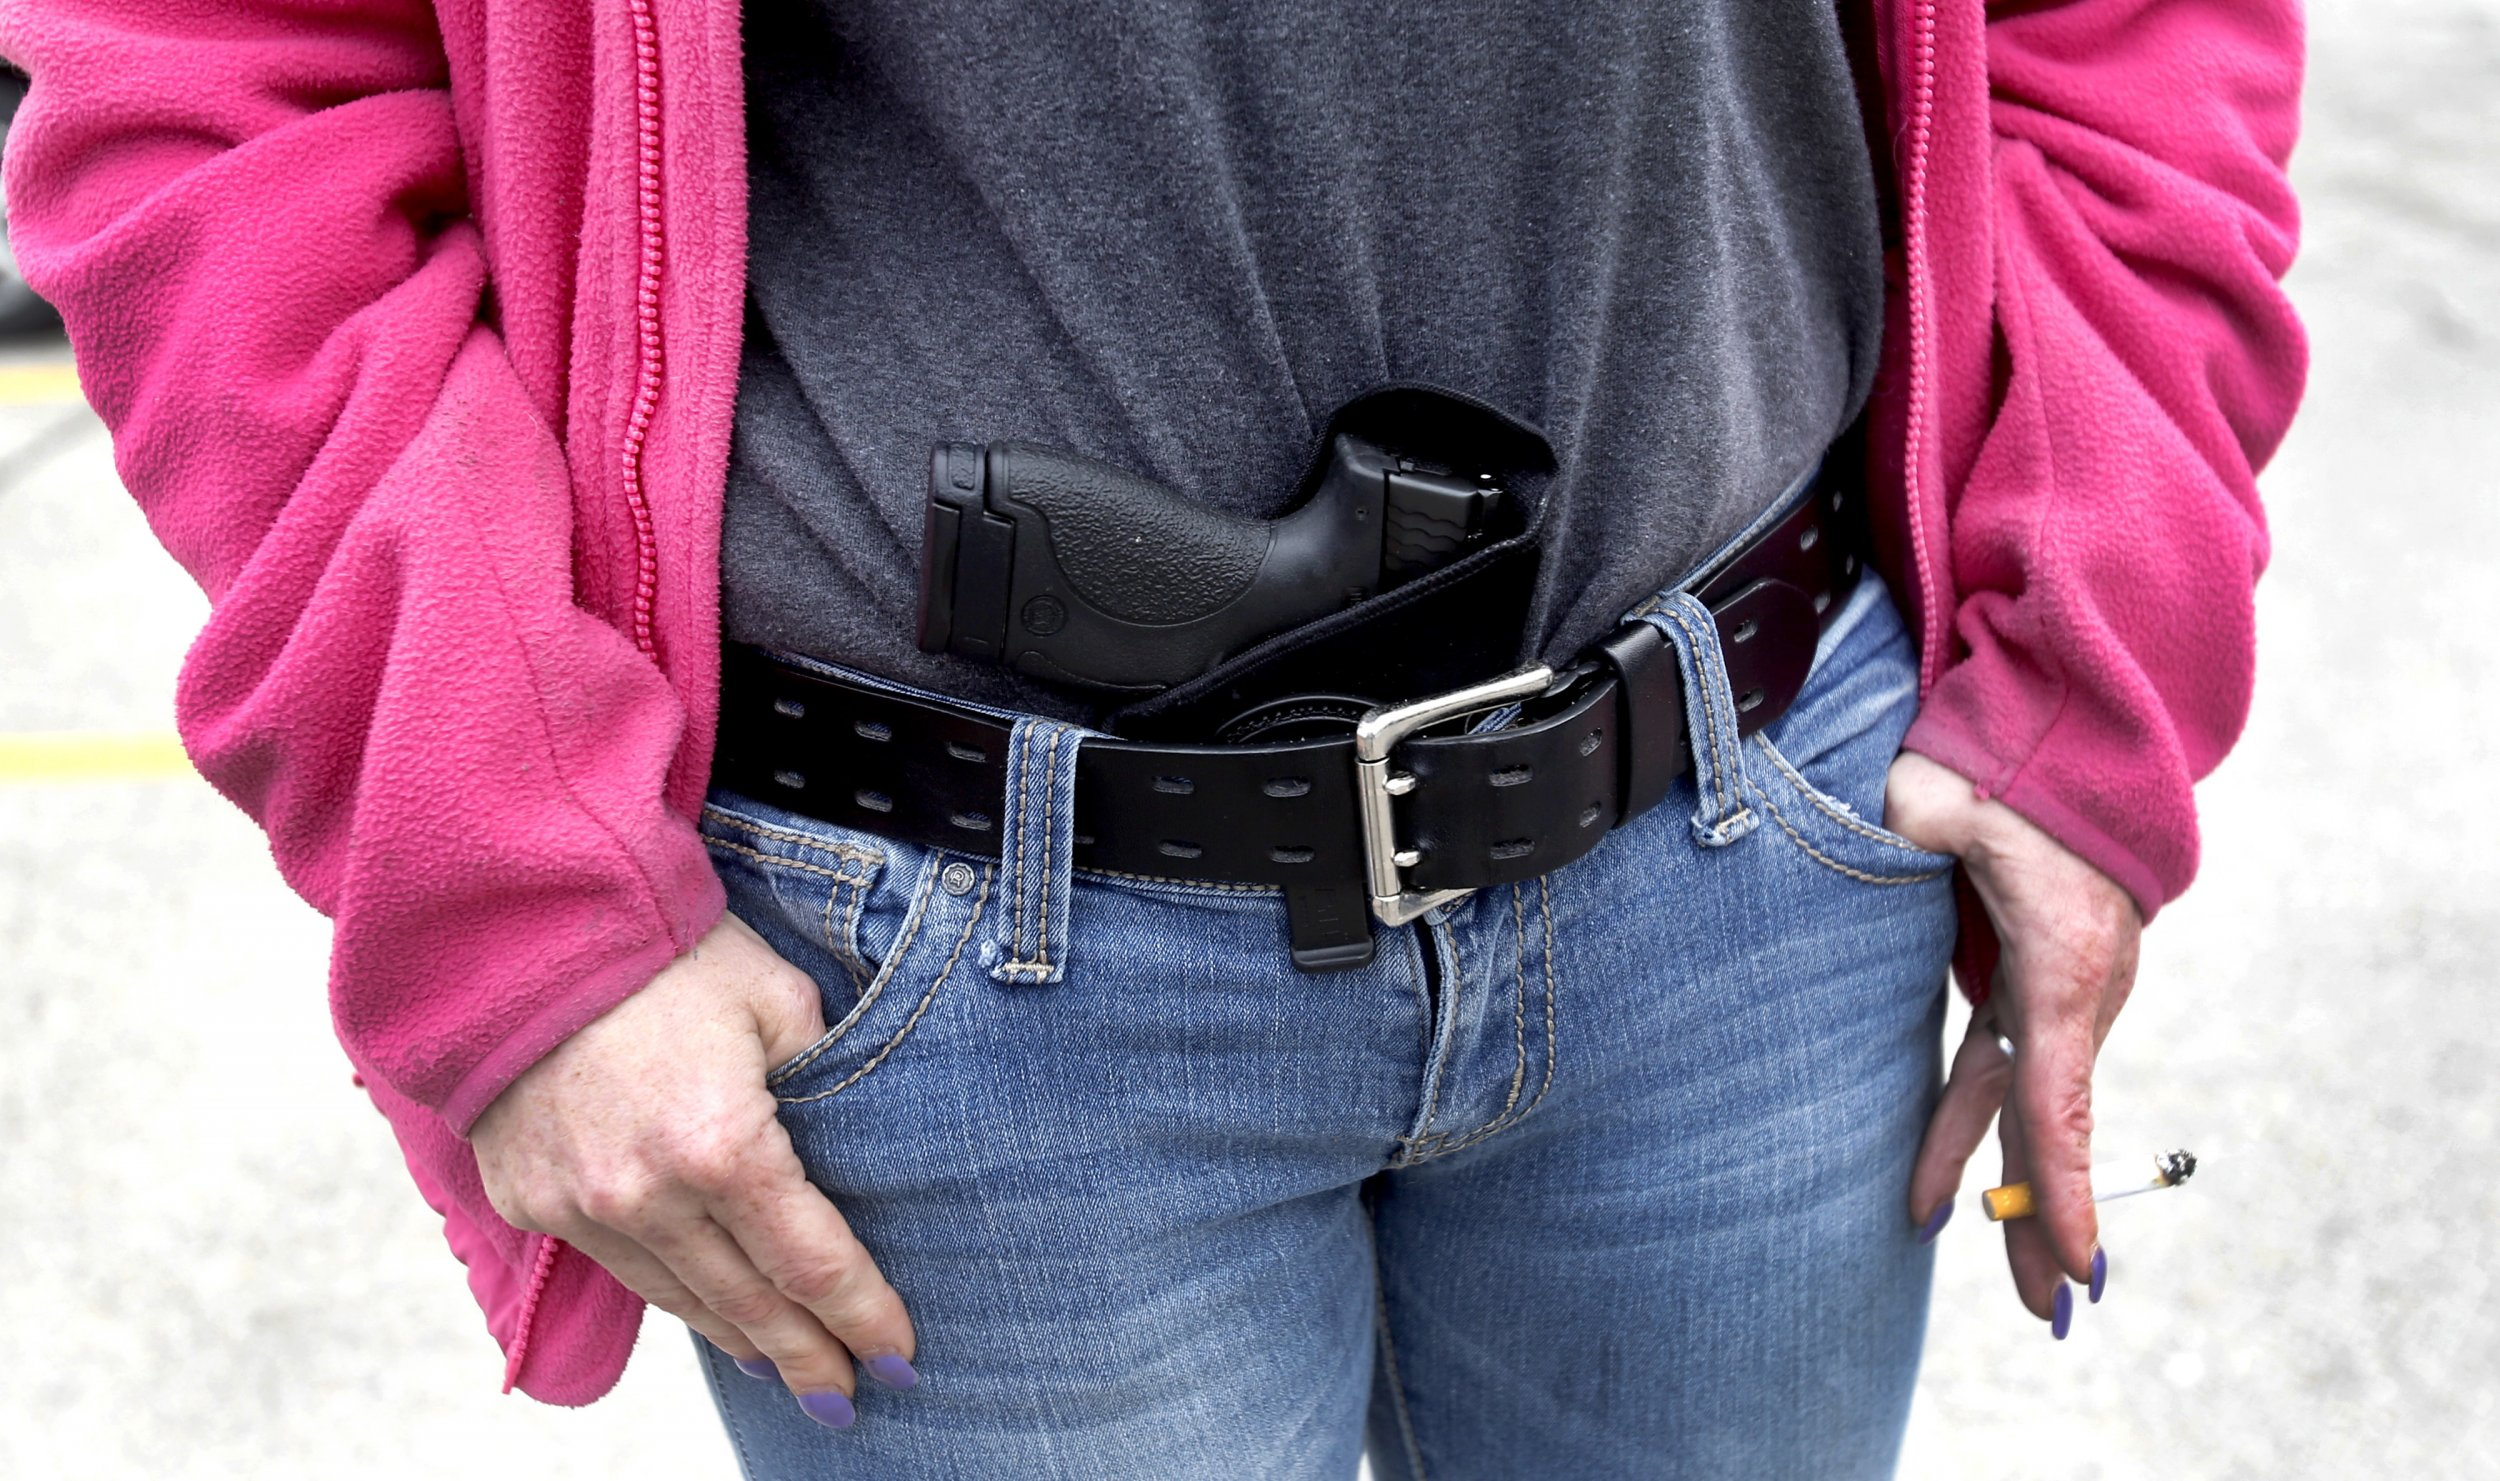 List of Pros and Cons of Concealed Carry